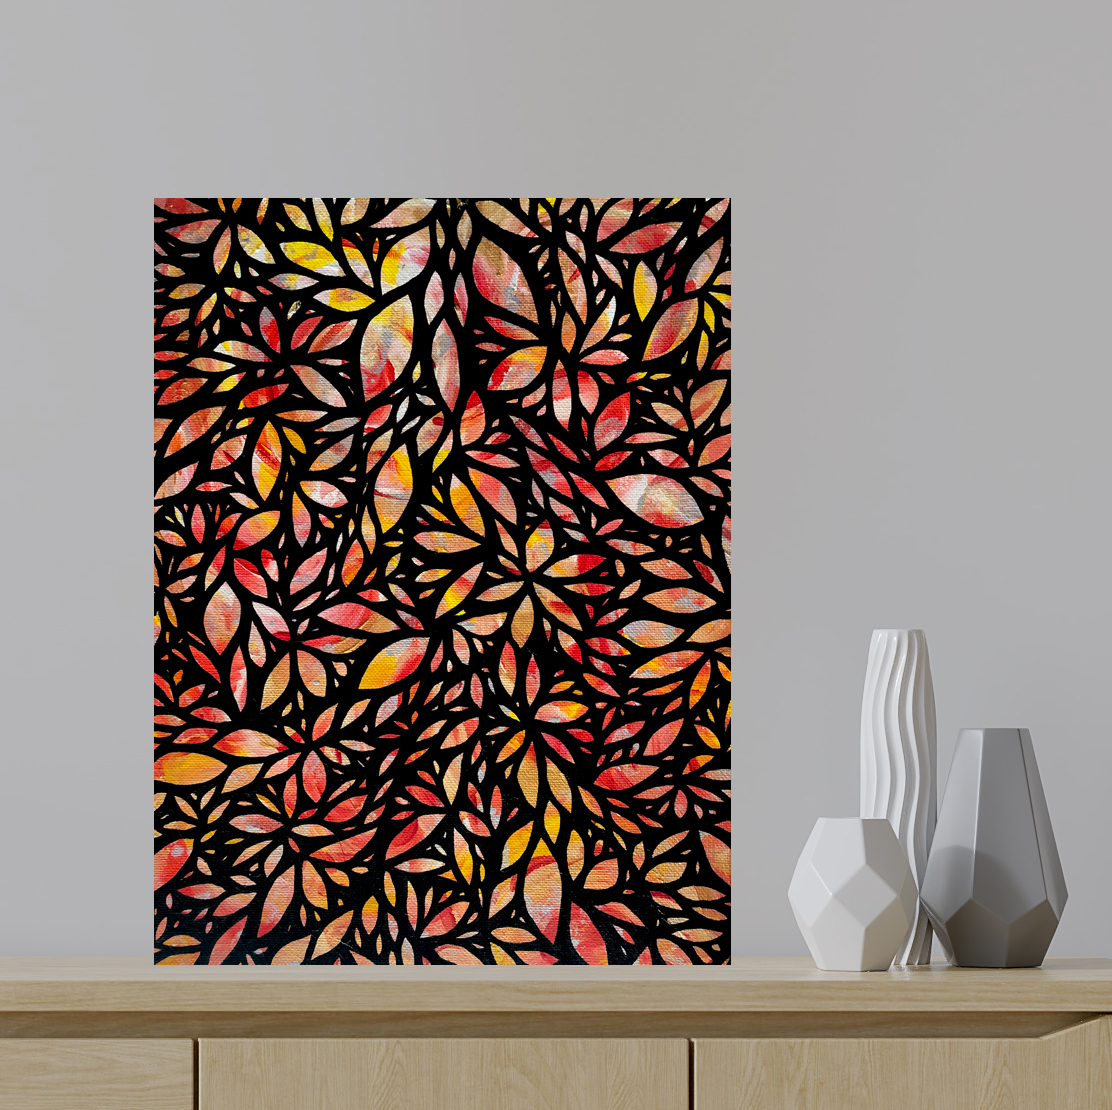 Untitled orange stained glass